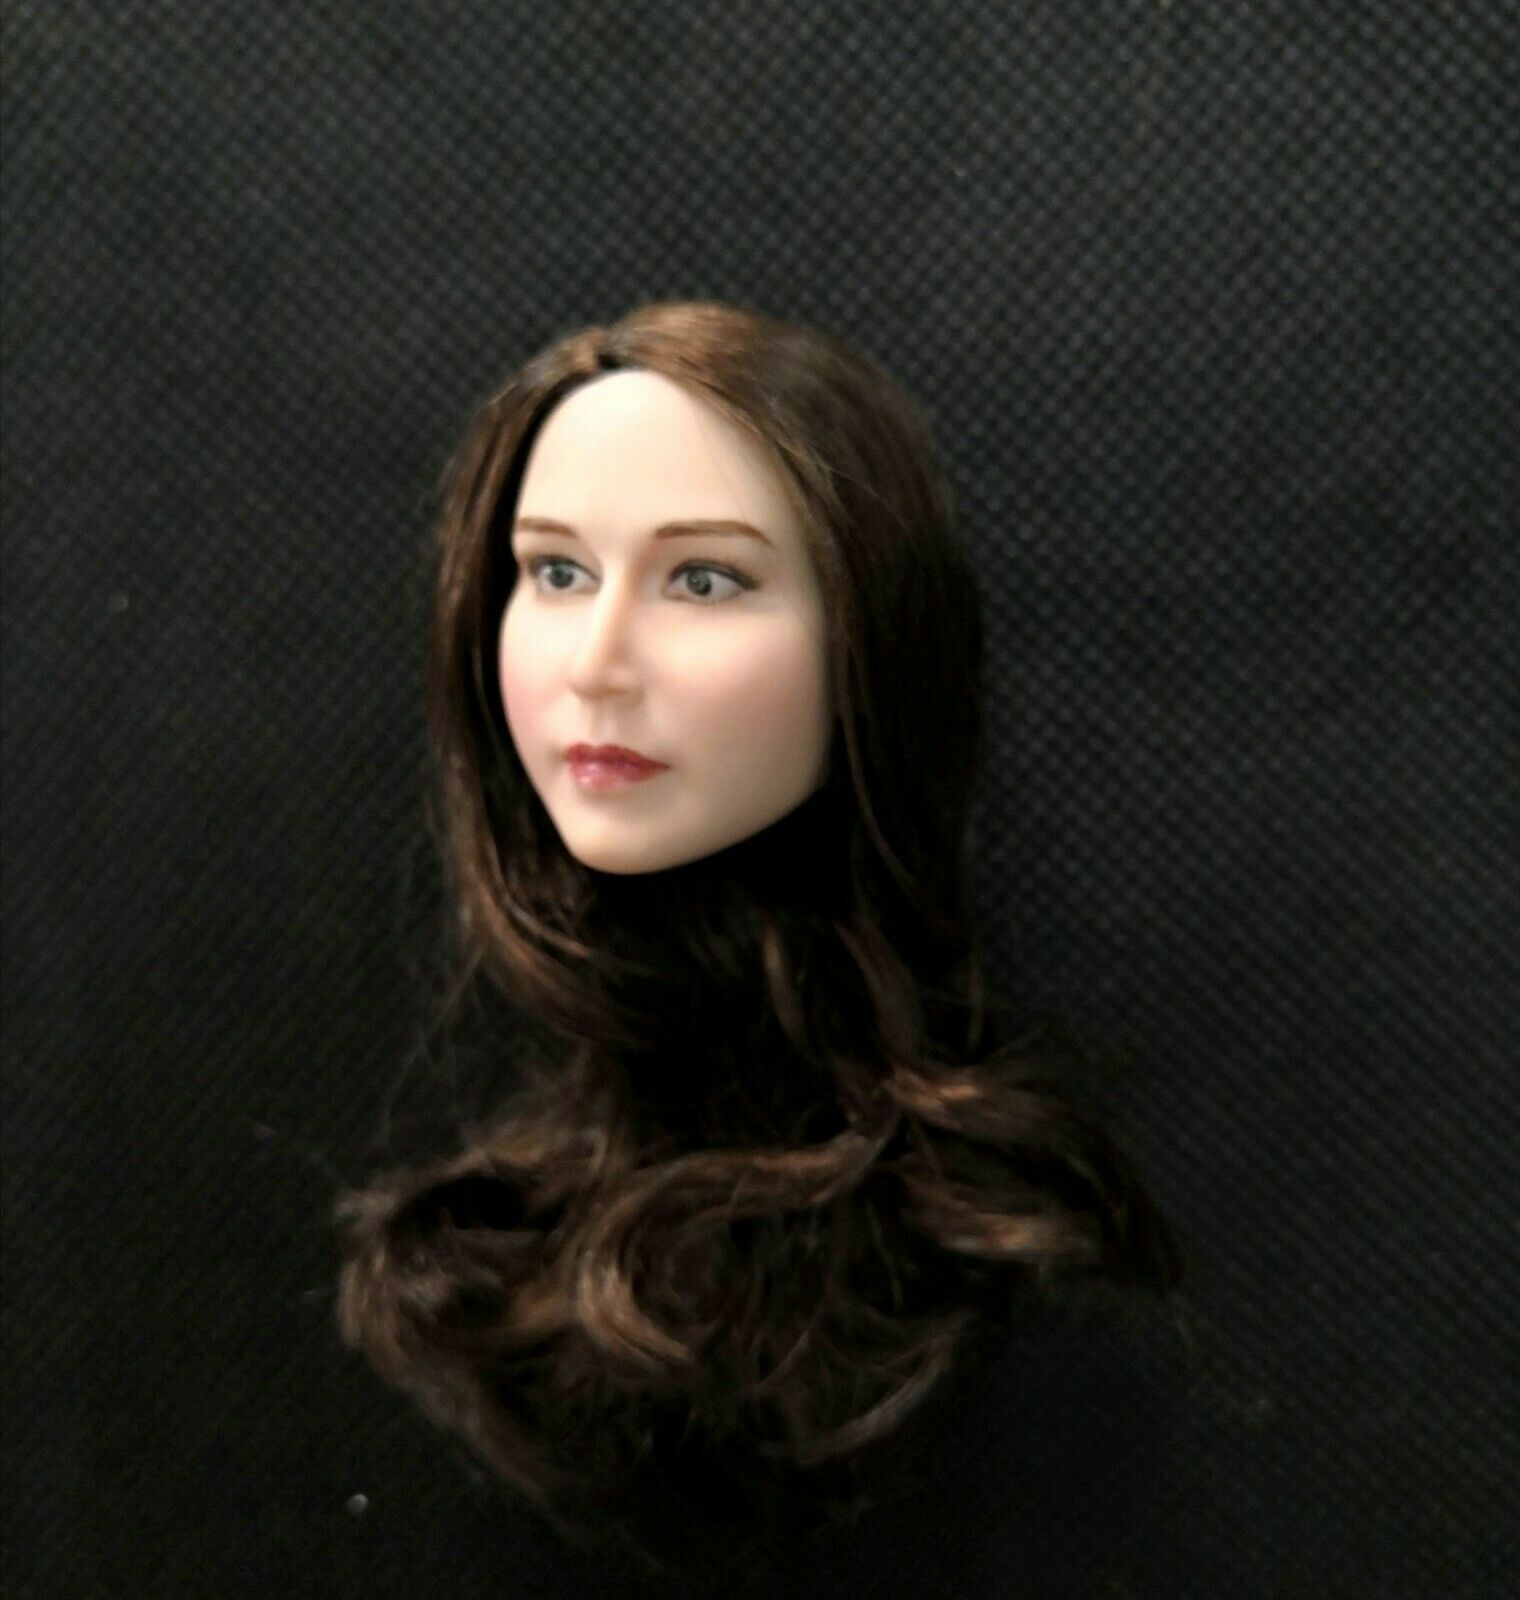 1 1 1 6 Scale Female Adele Head Sculpt White Skin Brown Hair Fit 12   Body Toys c0f721